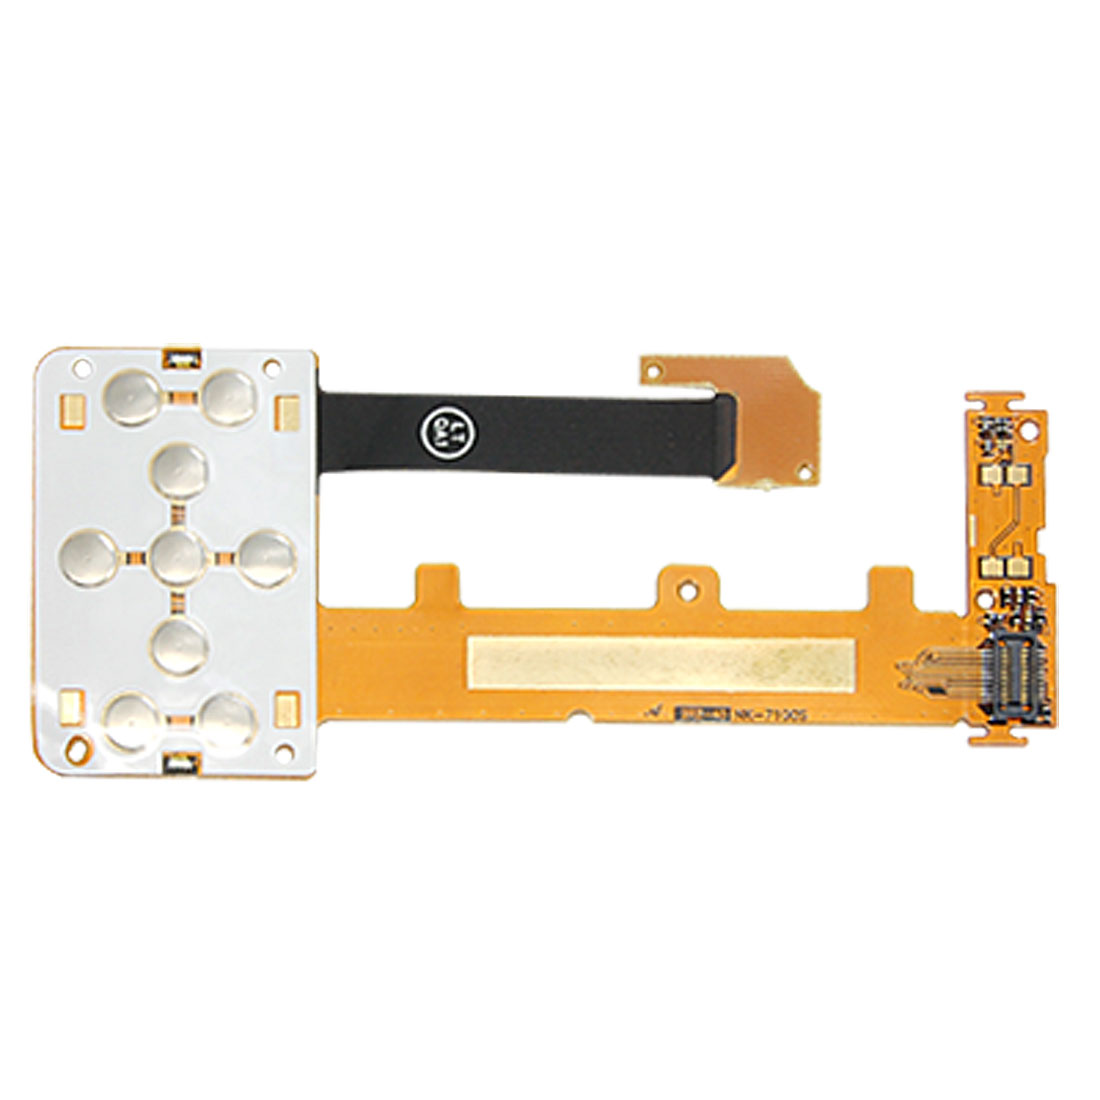 Keypad Flex Ribbon Cable for Nokia 7100 Supernova 7100s